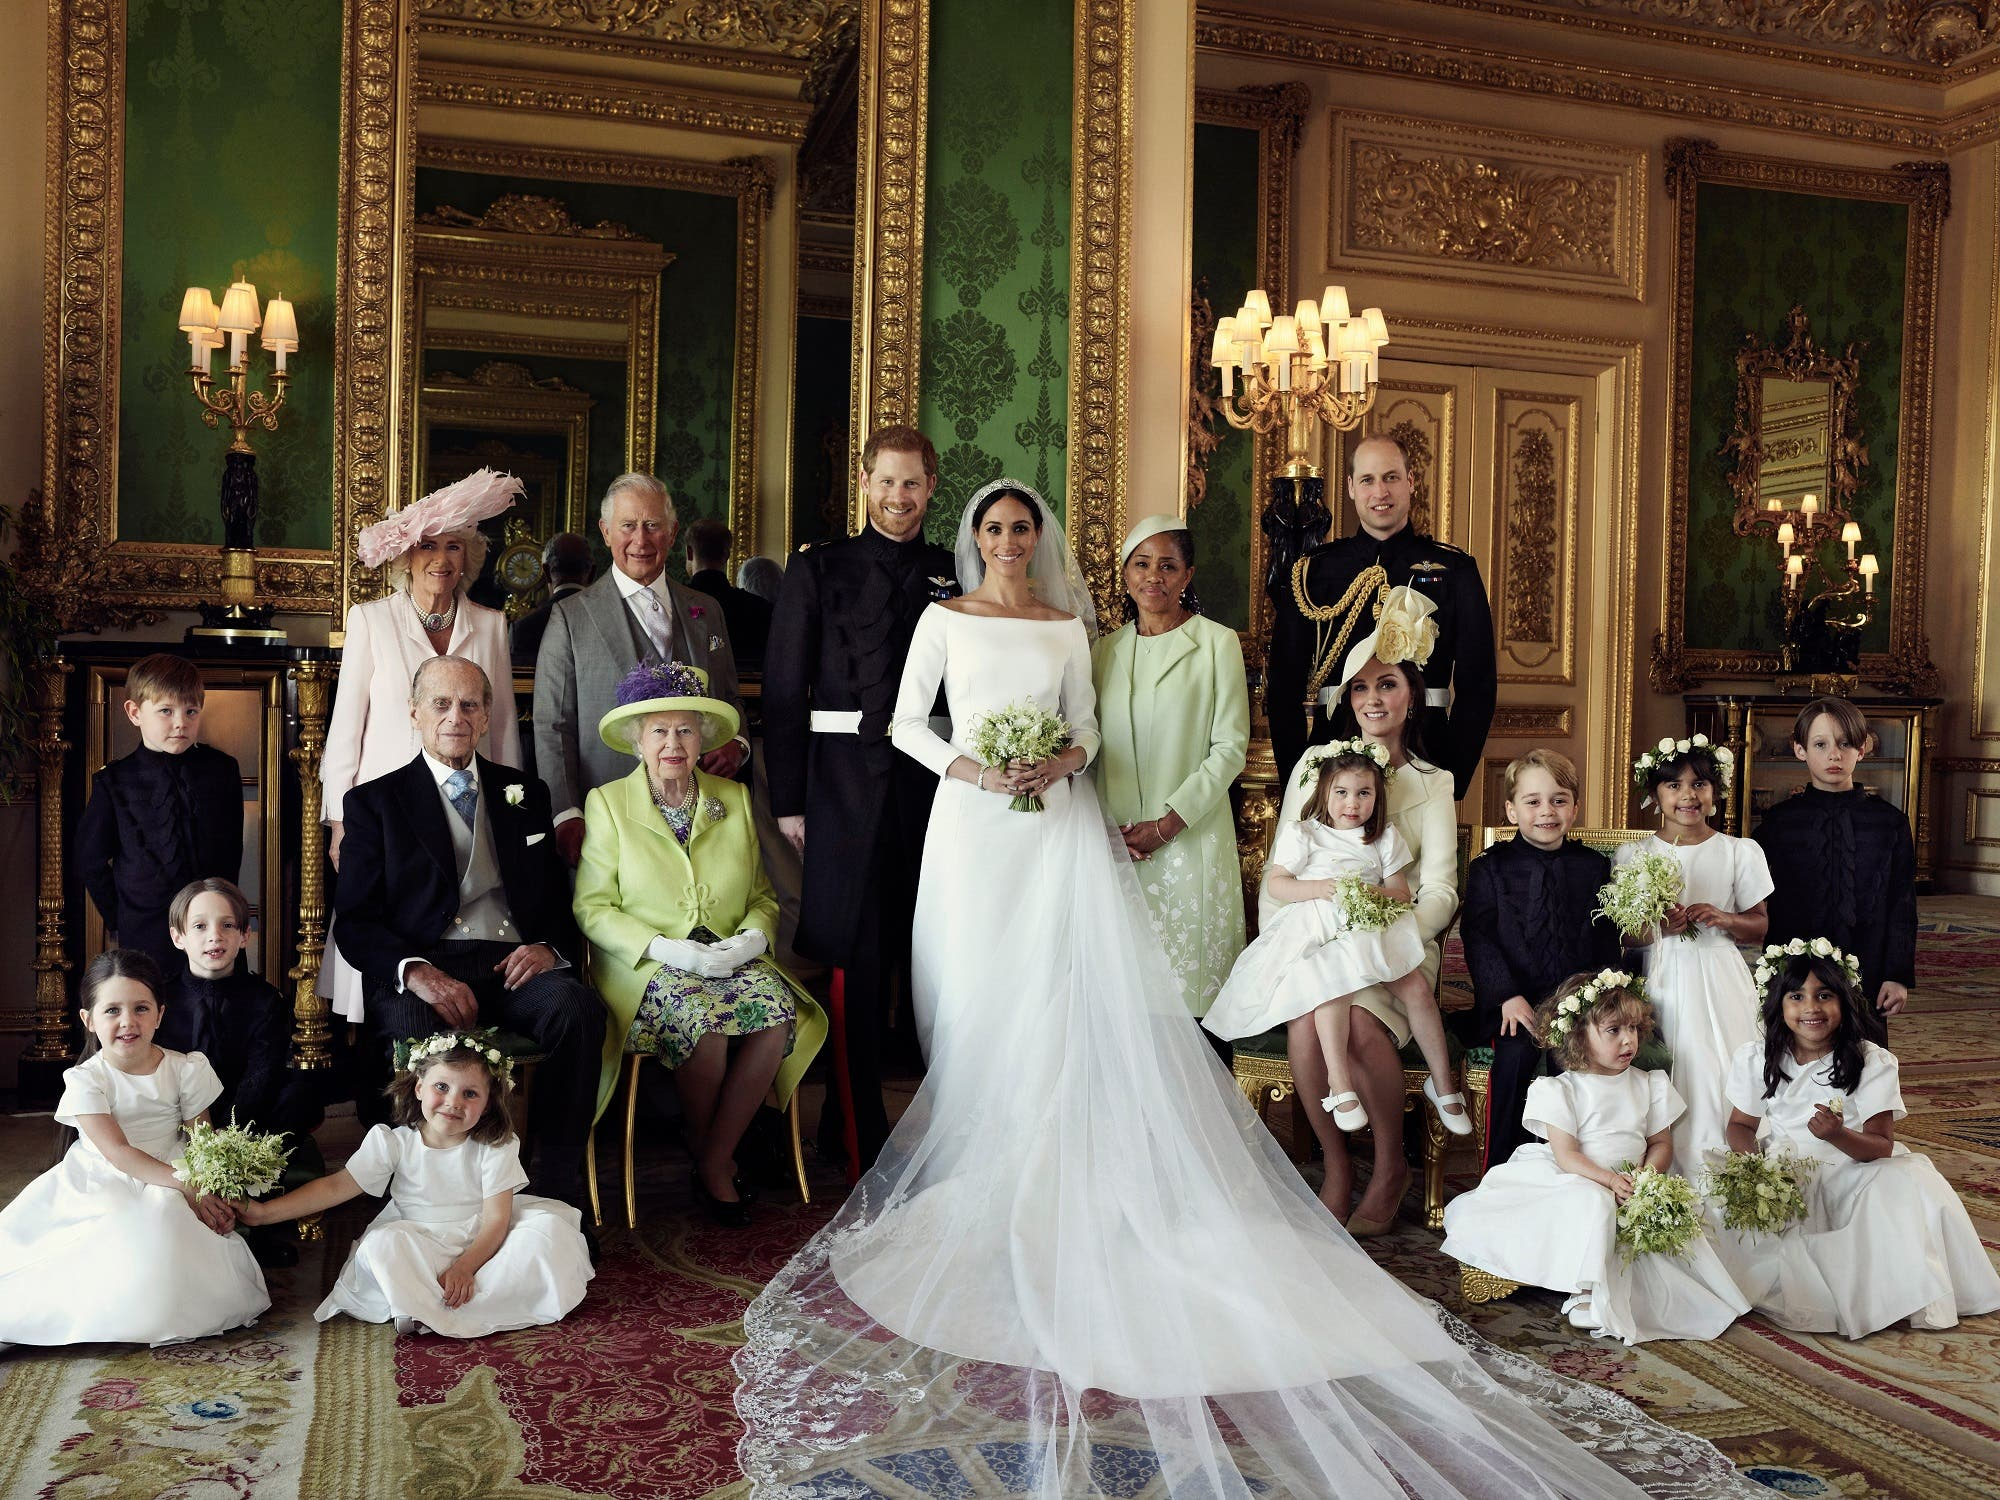 The Duke and Duchess of Sussex have released three official photographs from the wedding day of Prince Harry and Meghan Markle. (AFP)